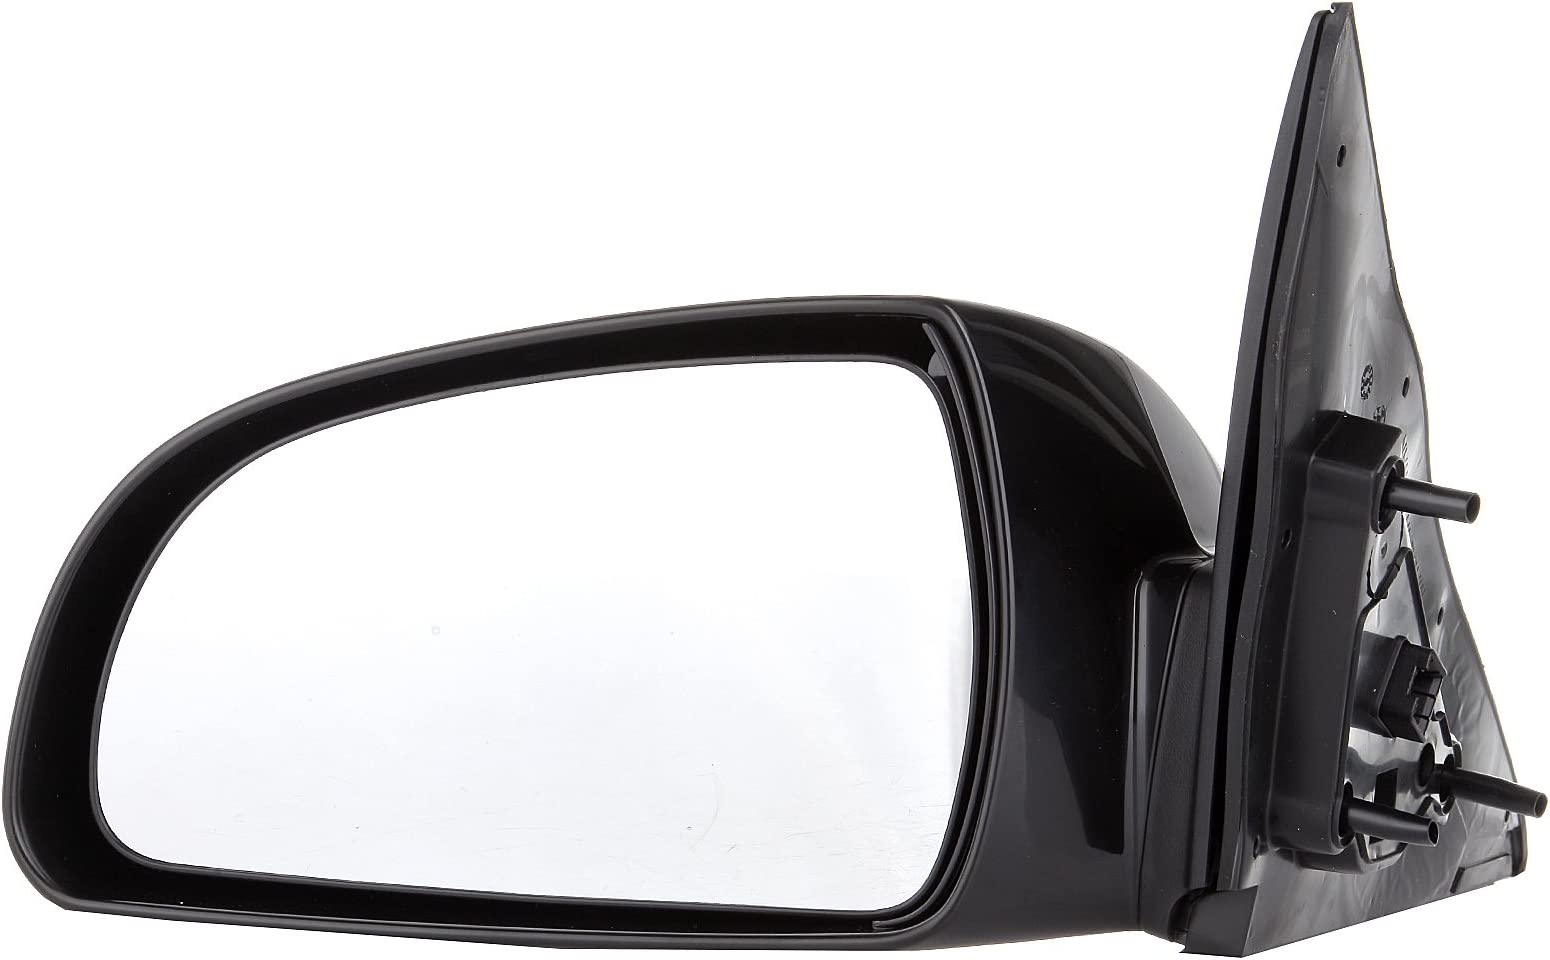 SCITOO Side View Mirror A Pair of Mirrors Fit Compatible with Hyundai Sonata 2006 2007 2008 2009 2010 876100A000-D03HY1320149 HY1321149 Power Adjustment Heating Non-Folding